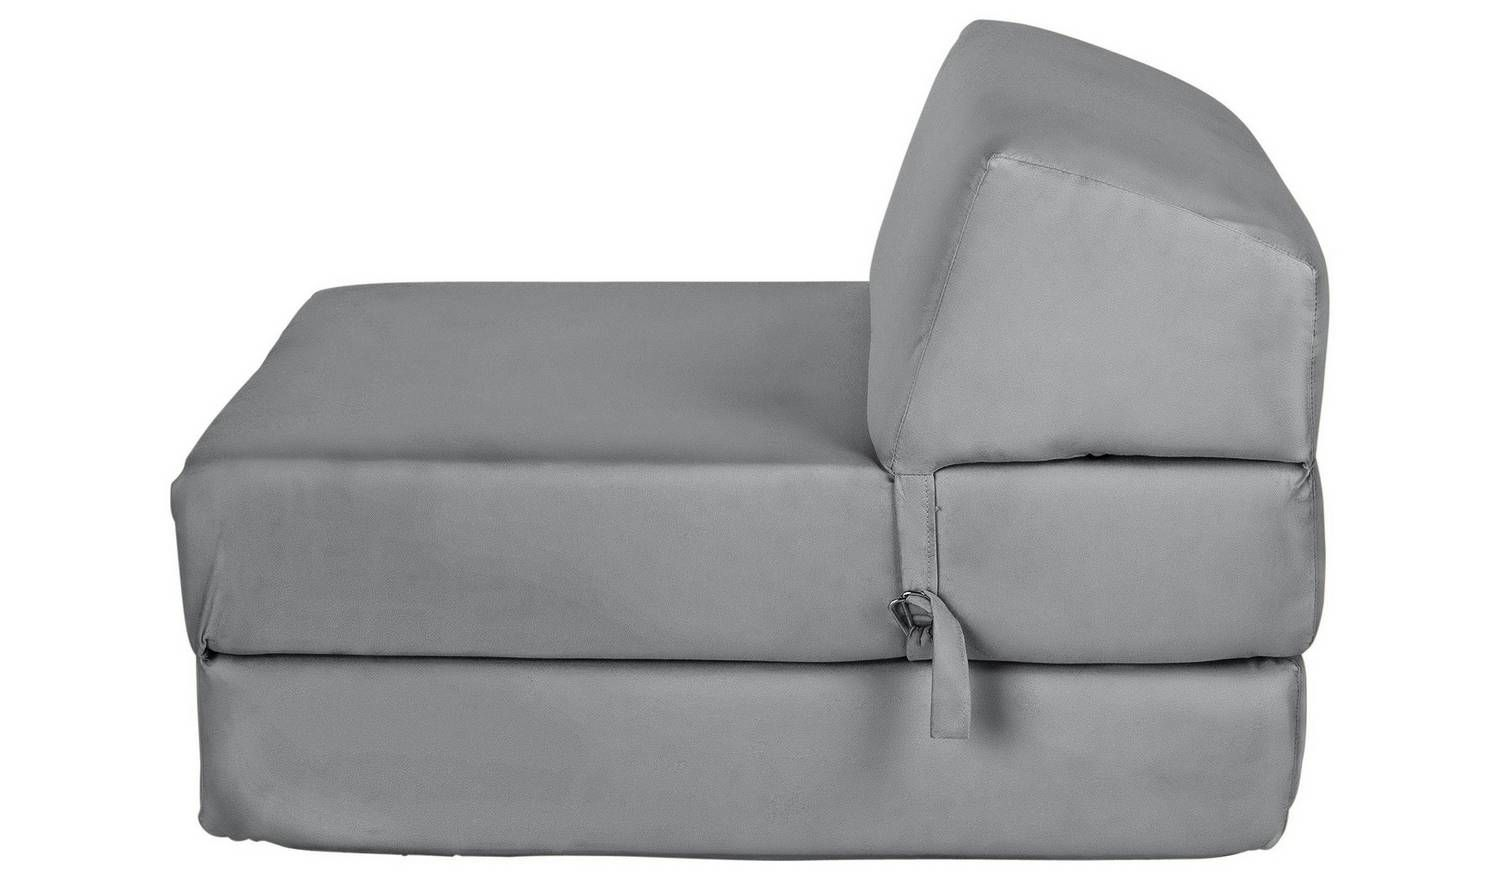 Buy Argos Home Single Cotton Chair Bed Flint Grey Sofa Beds Argos Grey Sofa Bed Argos Home Chair Bed